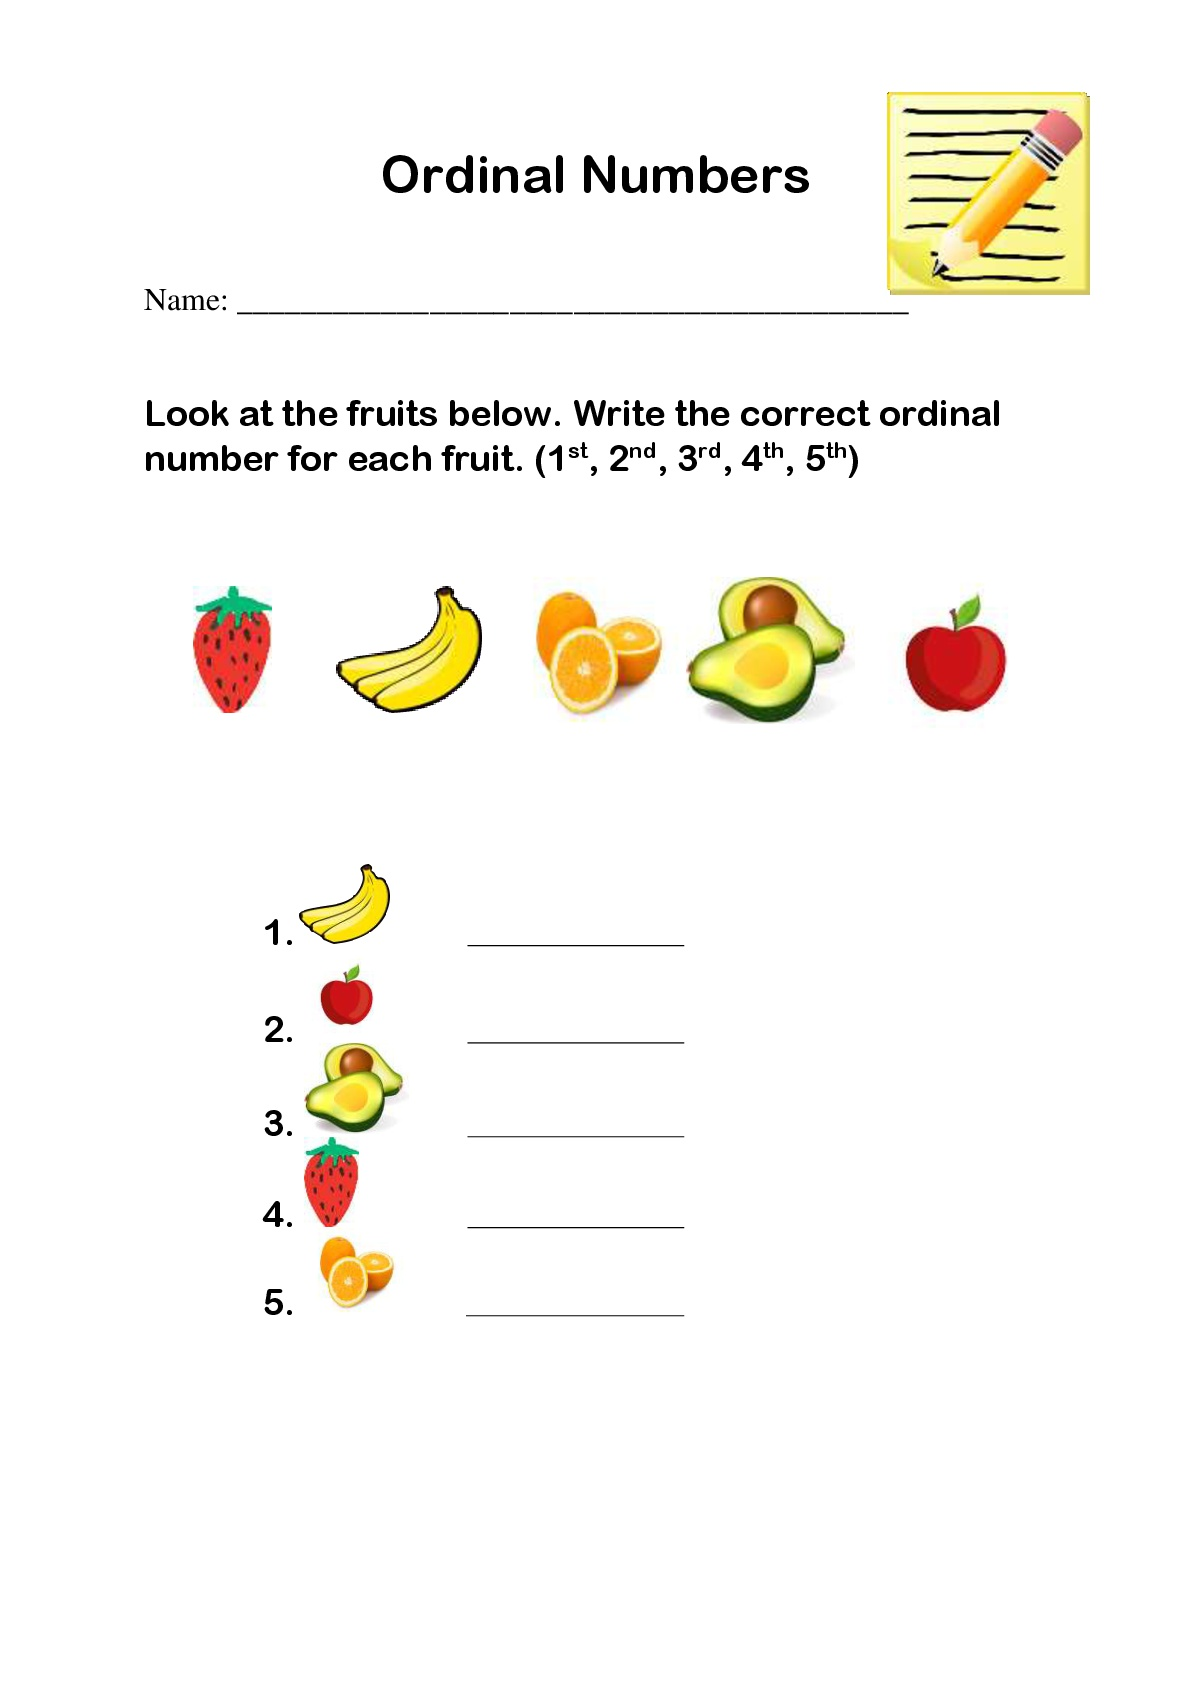 Sequencing Ordinal Numbers